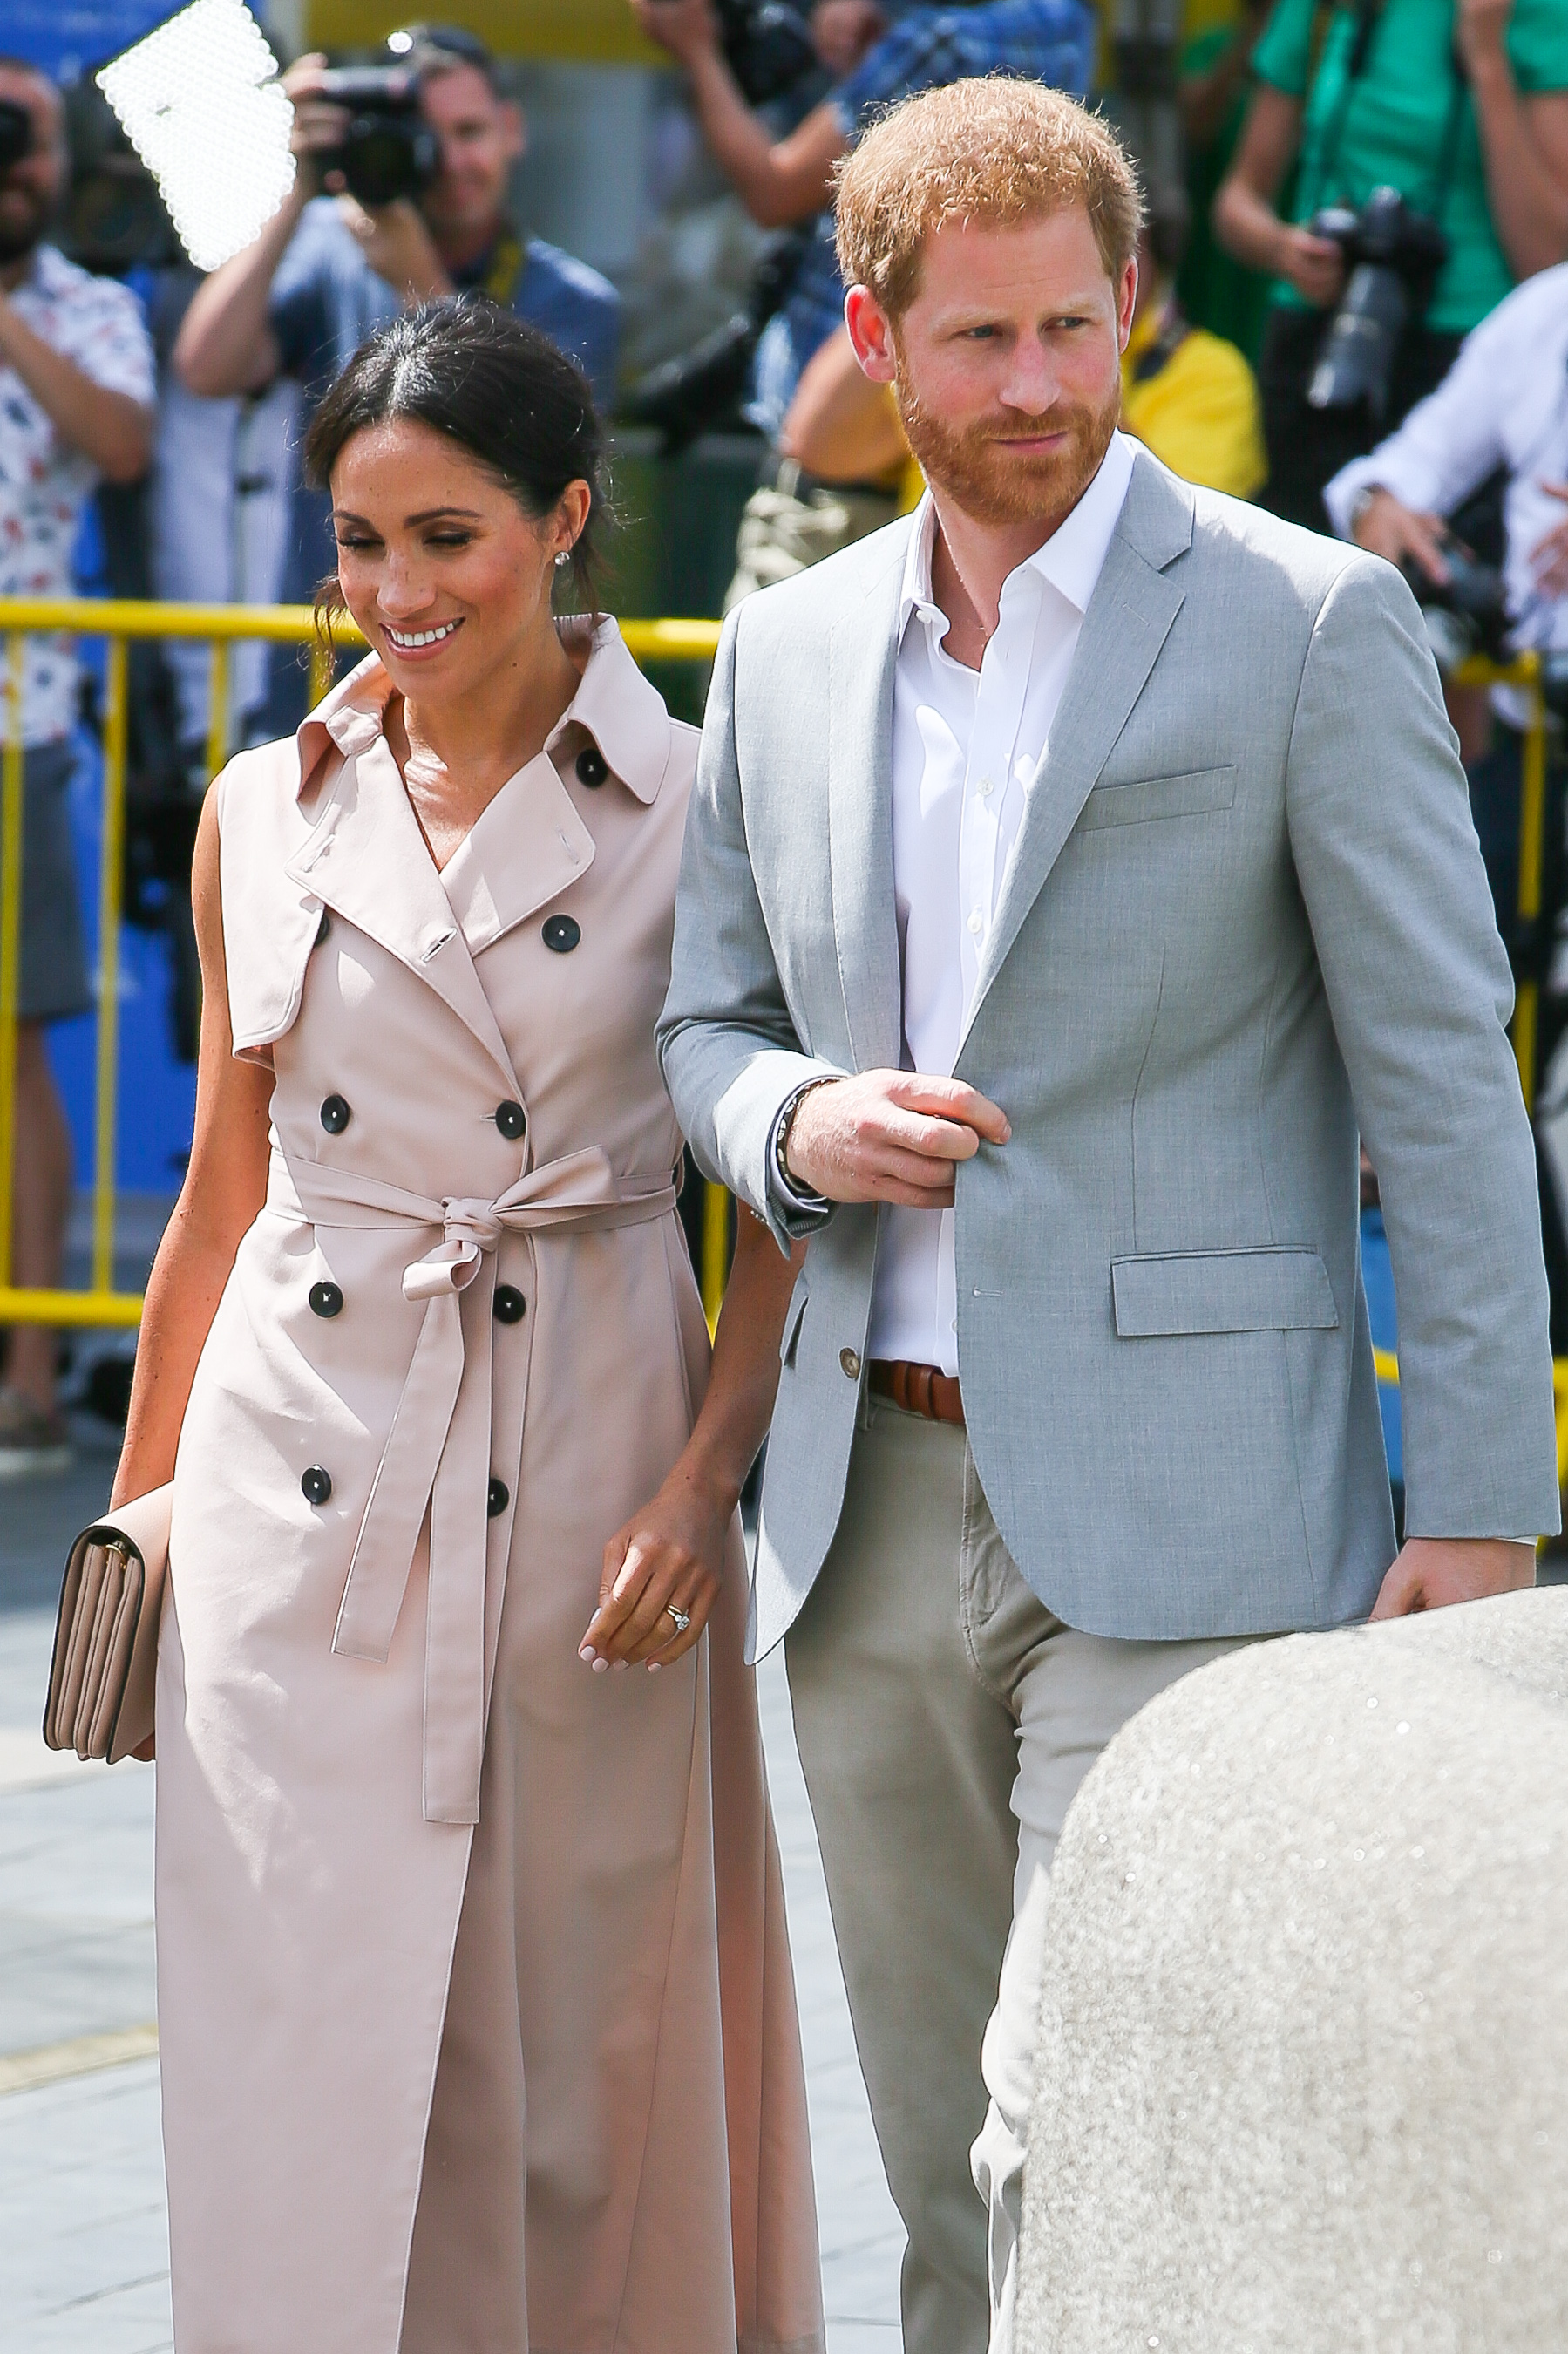 Duke and Duchess of Sussex Harry and Meghan arriving at Southbank Centre to visit the Nelson Mandela Centenary Exhibition - London